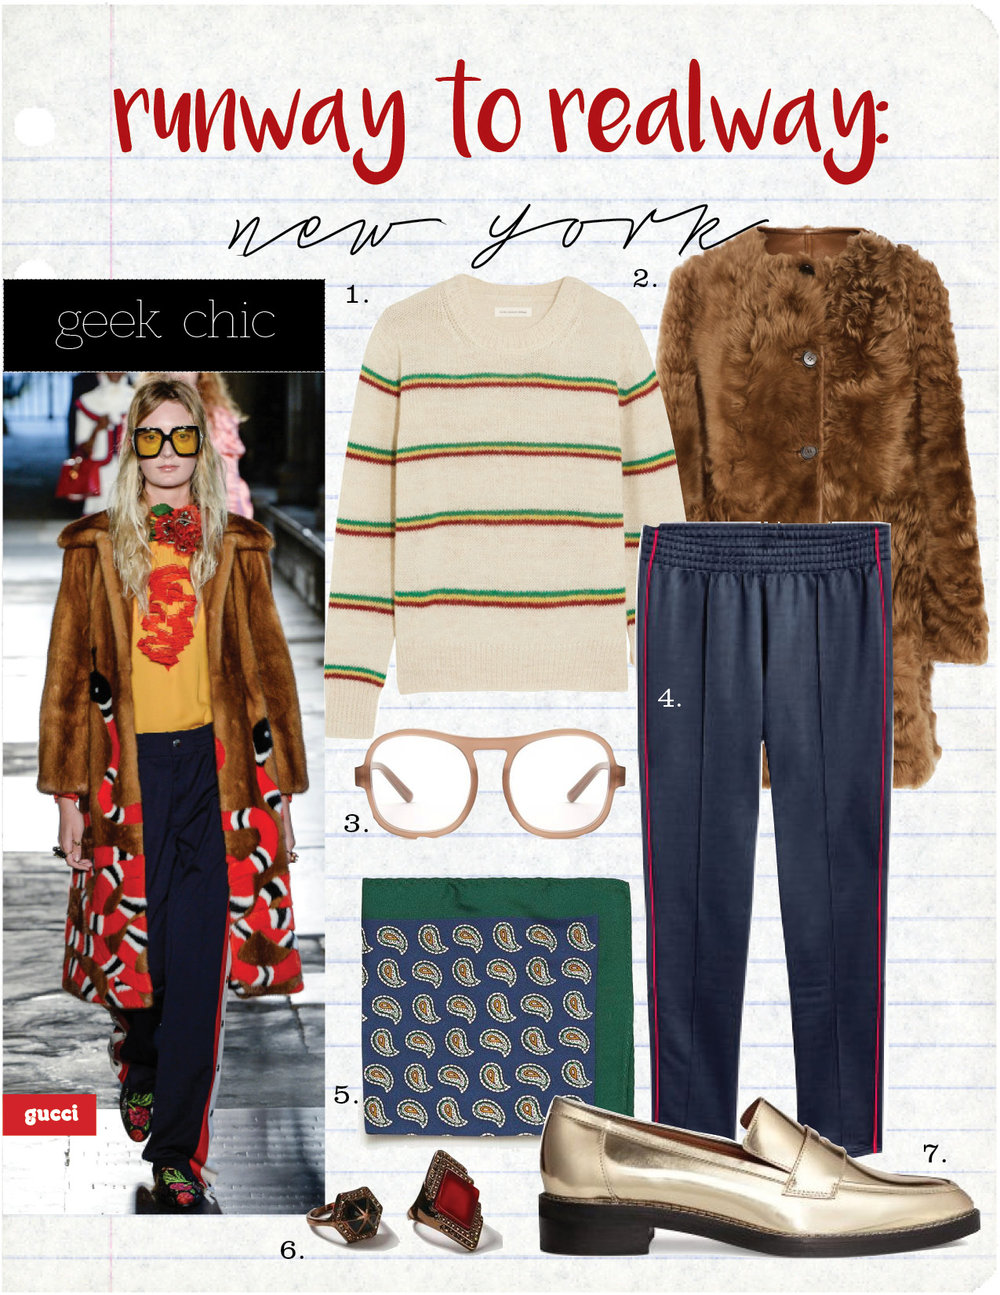 1. etoile isabel marant goya striped alpaca-blend sweater, $285,  net-a-porter.com  2. marni reversible shearling and leather coat, $5500,  net-a-porter.com  3. chloe marlow acetate glasses, $245,  matchesfashion.com  4. H&M black track-suit joggers, $14,  hm.com  5. zara paisley scarf, $7,  zara.com  6. topshop ethnic stone rings, $12,  topshop.com  7. h&m leather loafers, $59,  hm.com